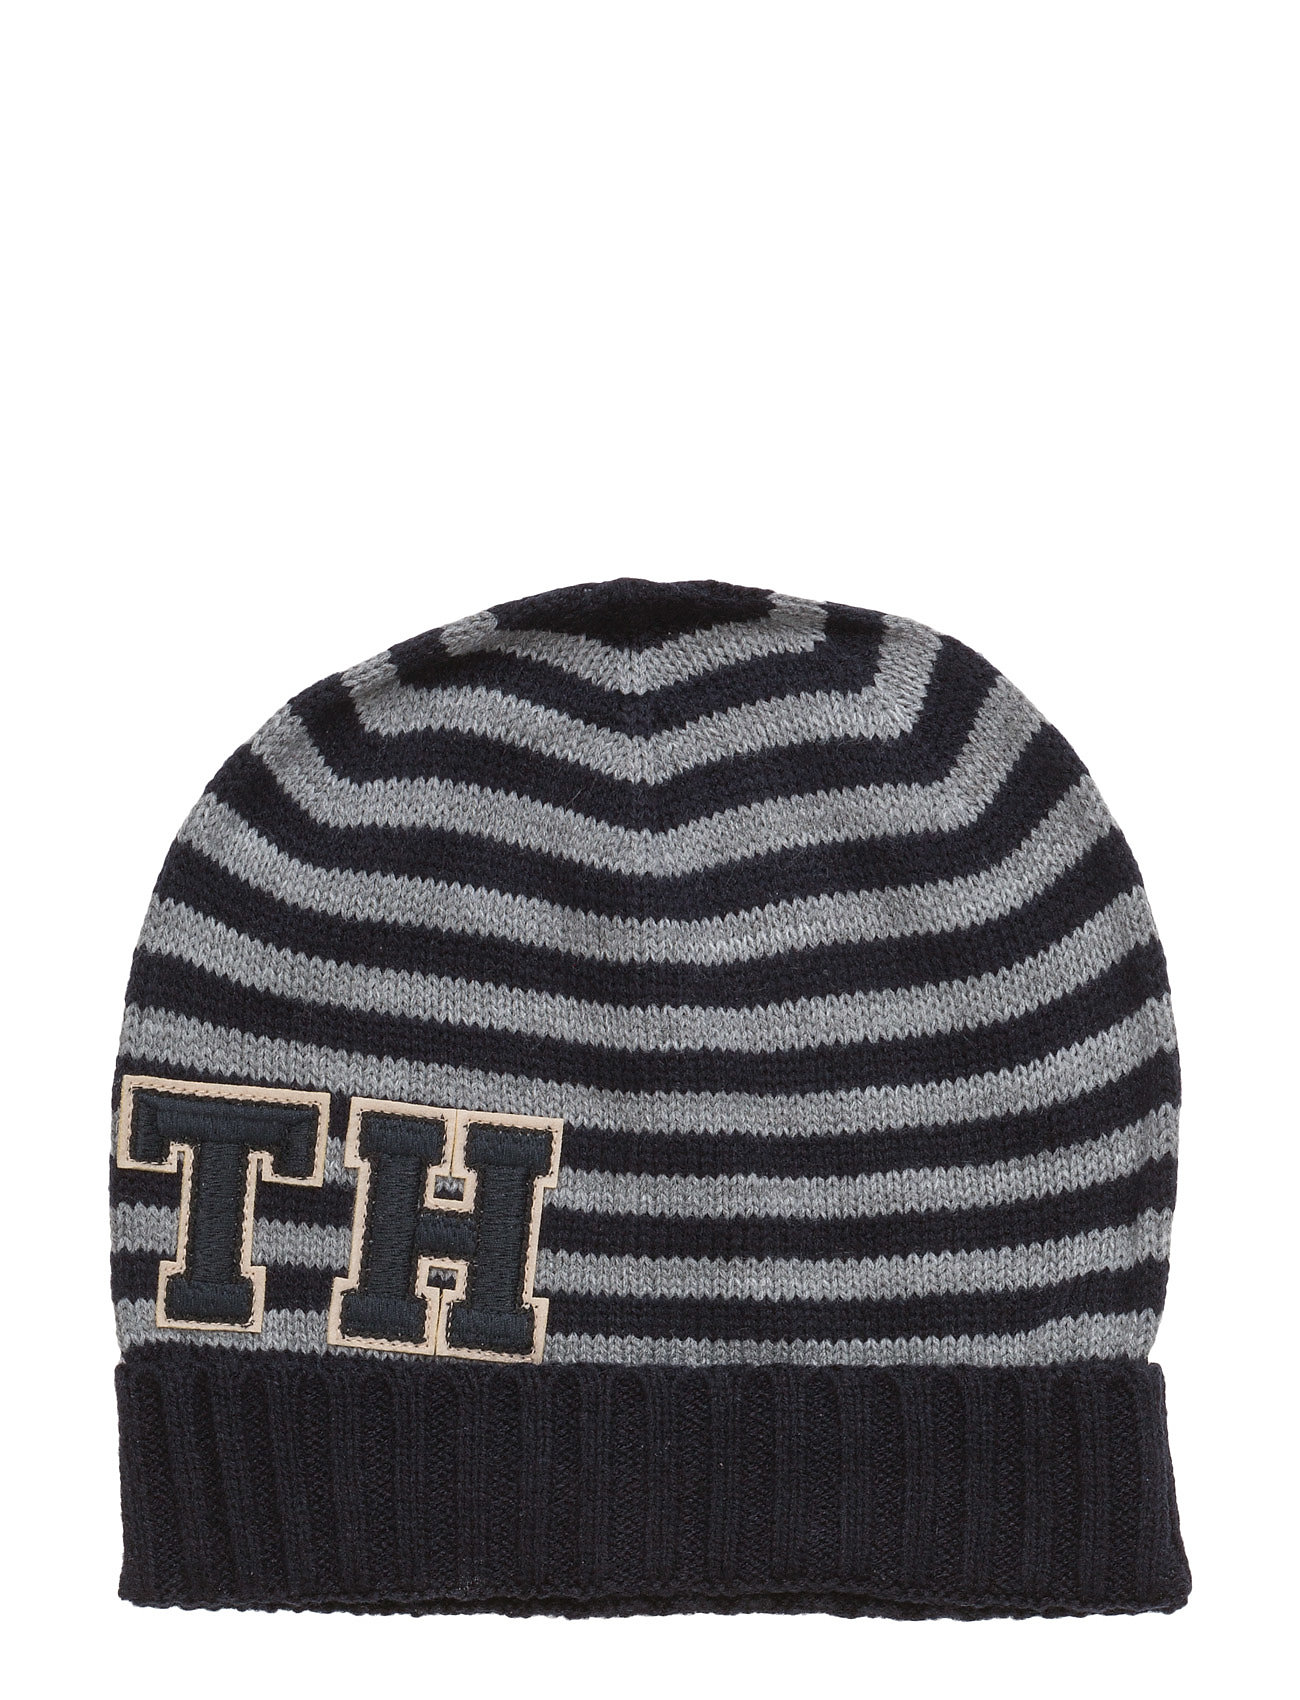 Th Patch Hat Stripes Tommy Hilfiger Accessories til Kvinder i Blå